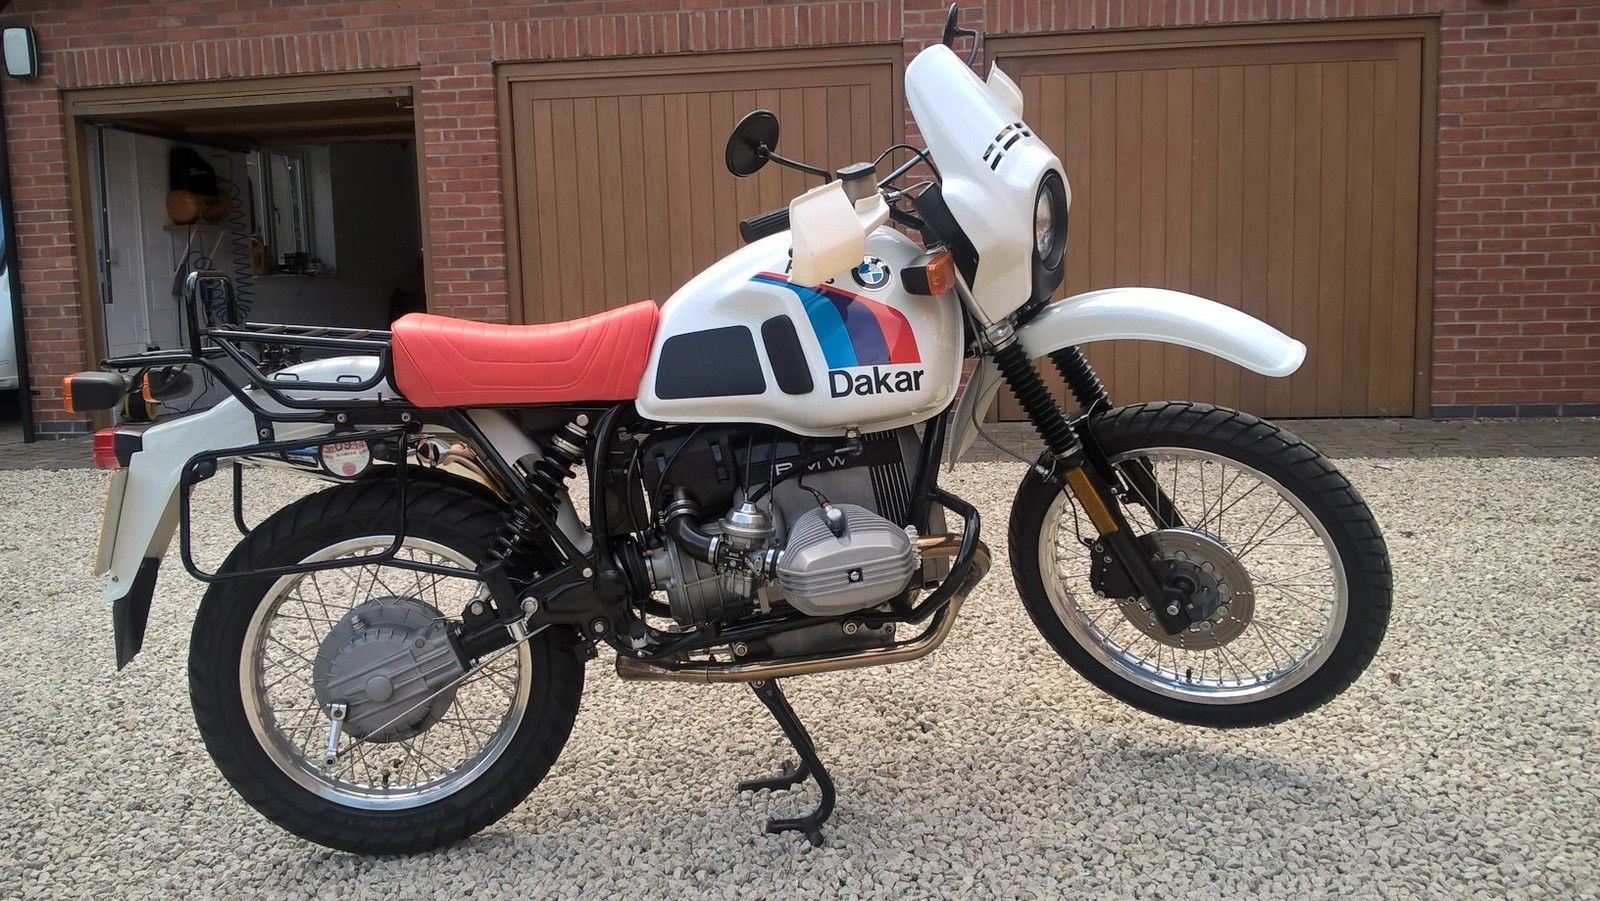 Bmw R80gs Paris Dakar 1986 Restored Classic Motorcycles At Bikes Restored Bikes Restored